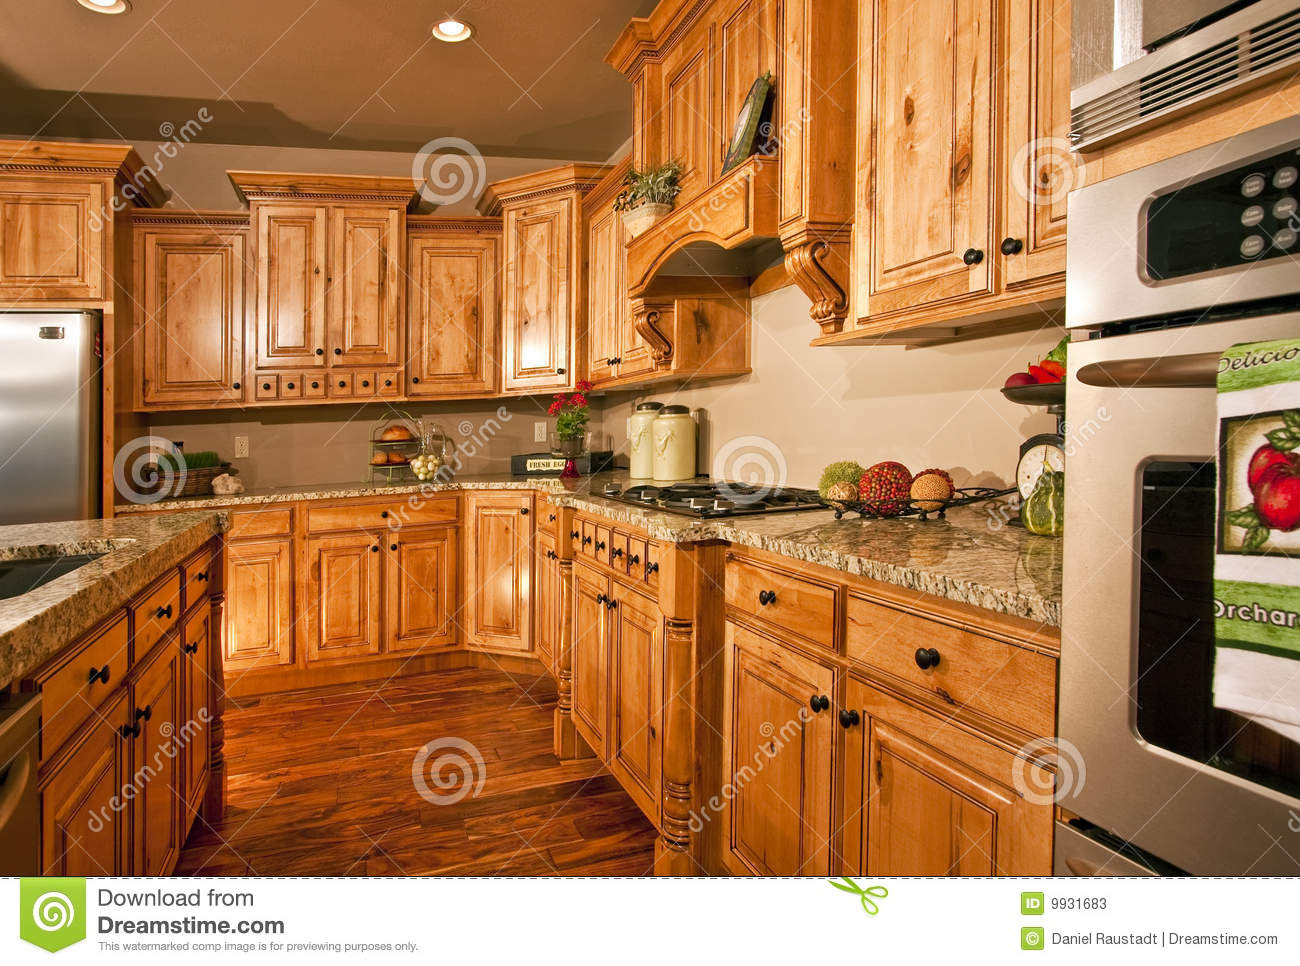 Big W Kitchen Appliances Large Modern Kitchen And Appliances Stock Image Image Of